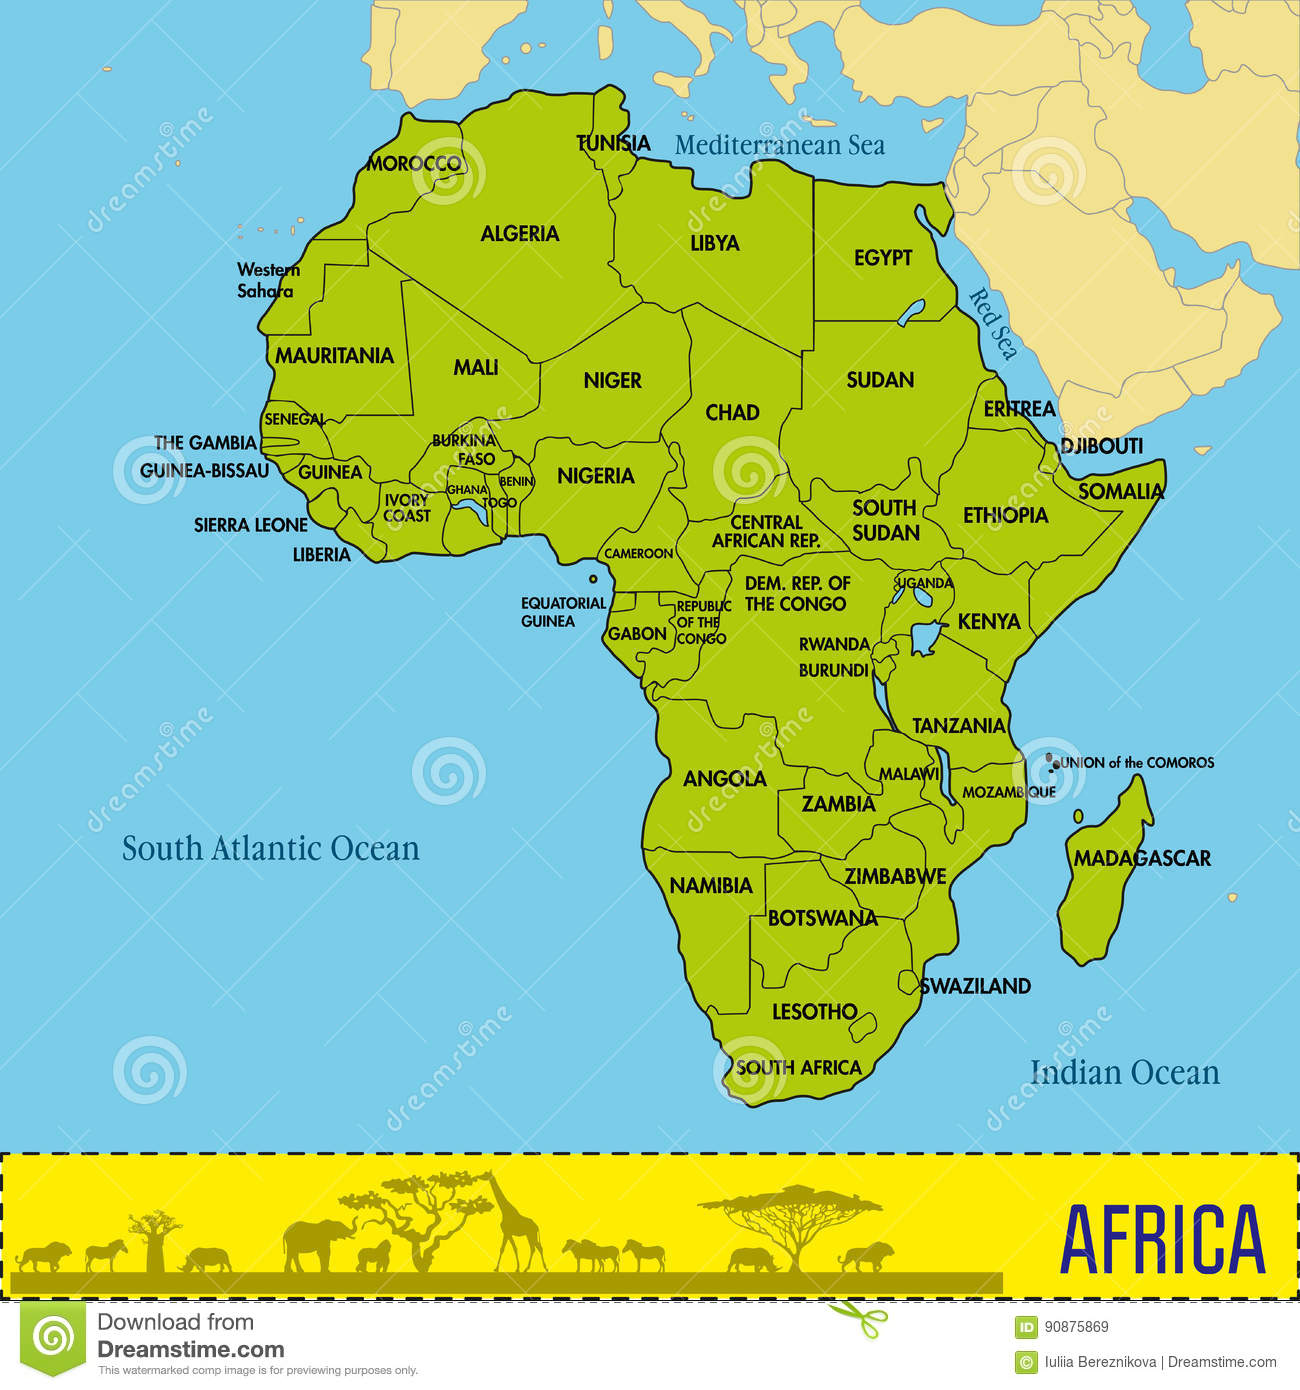 ... Drawn Map With Capitals National Borders Rivers And Lakes WEST AFRICA  List Of Countries In West Africa Capitals And Their WEST AFRICA List Of  Countries ...